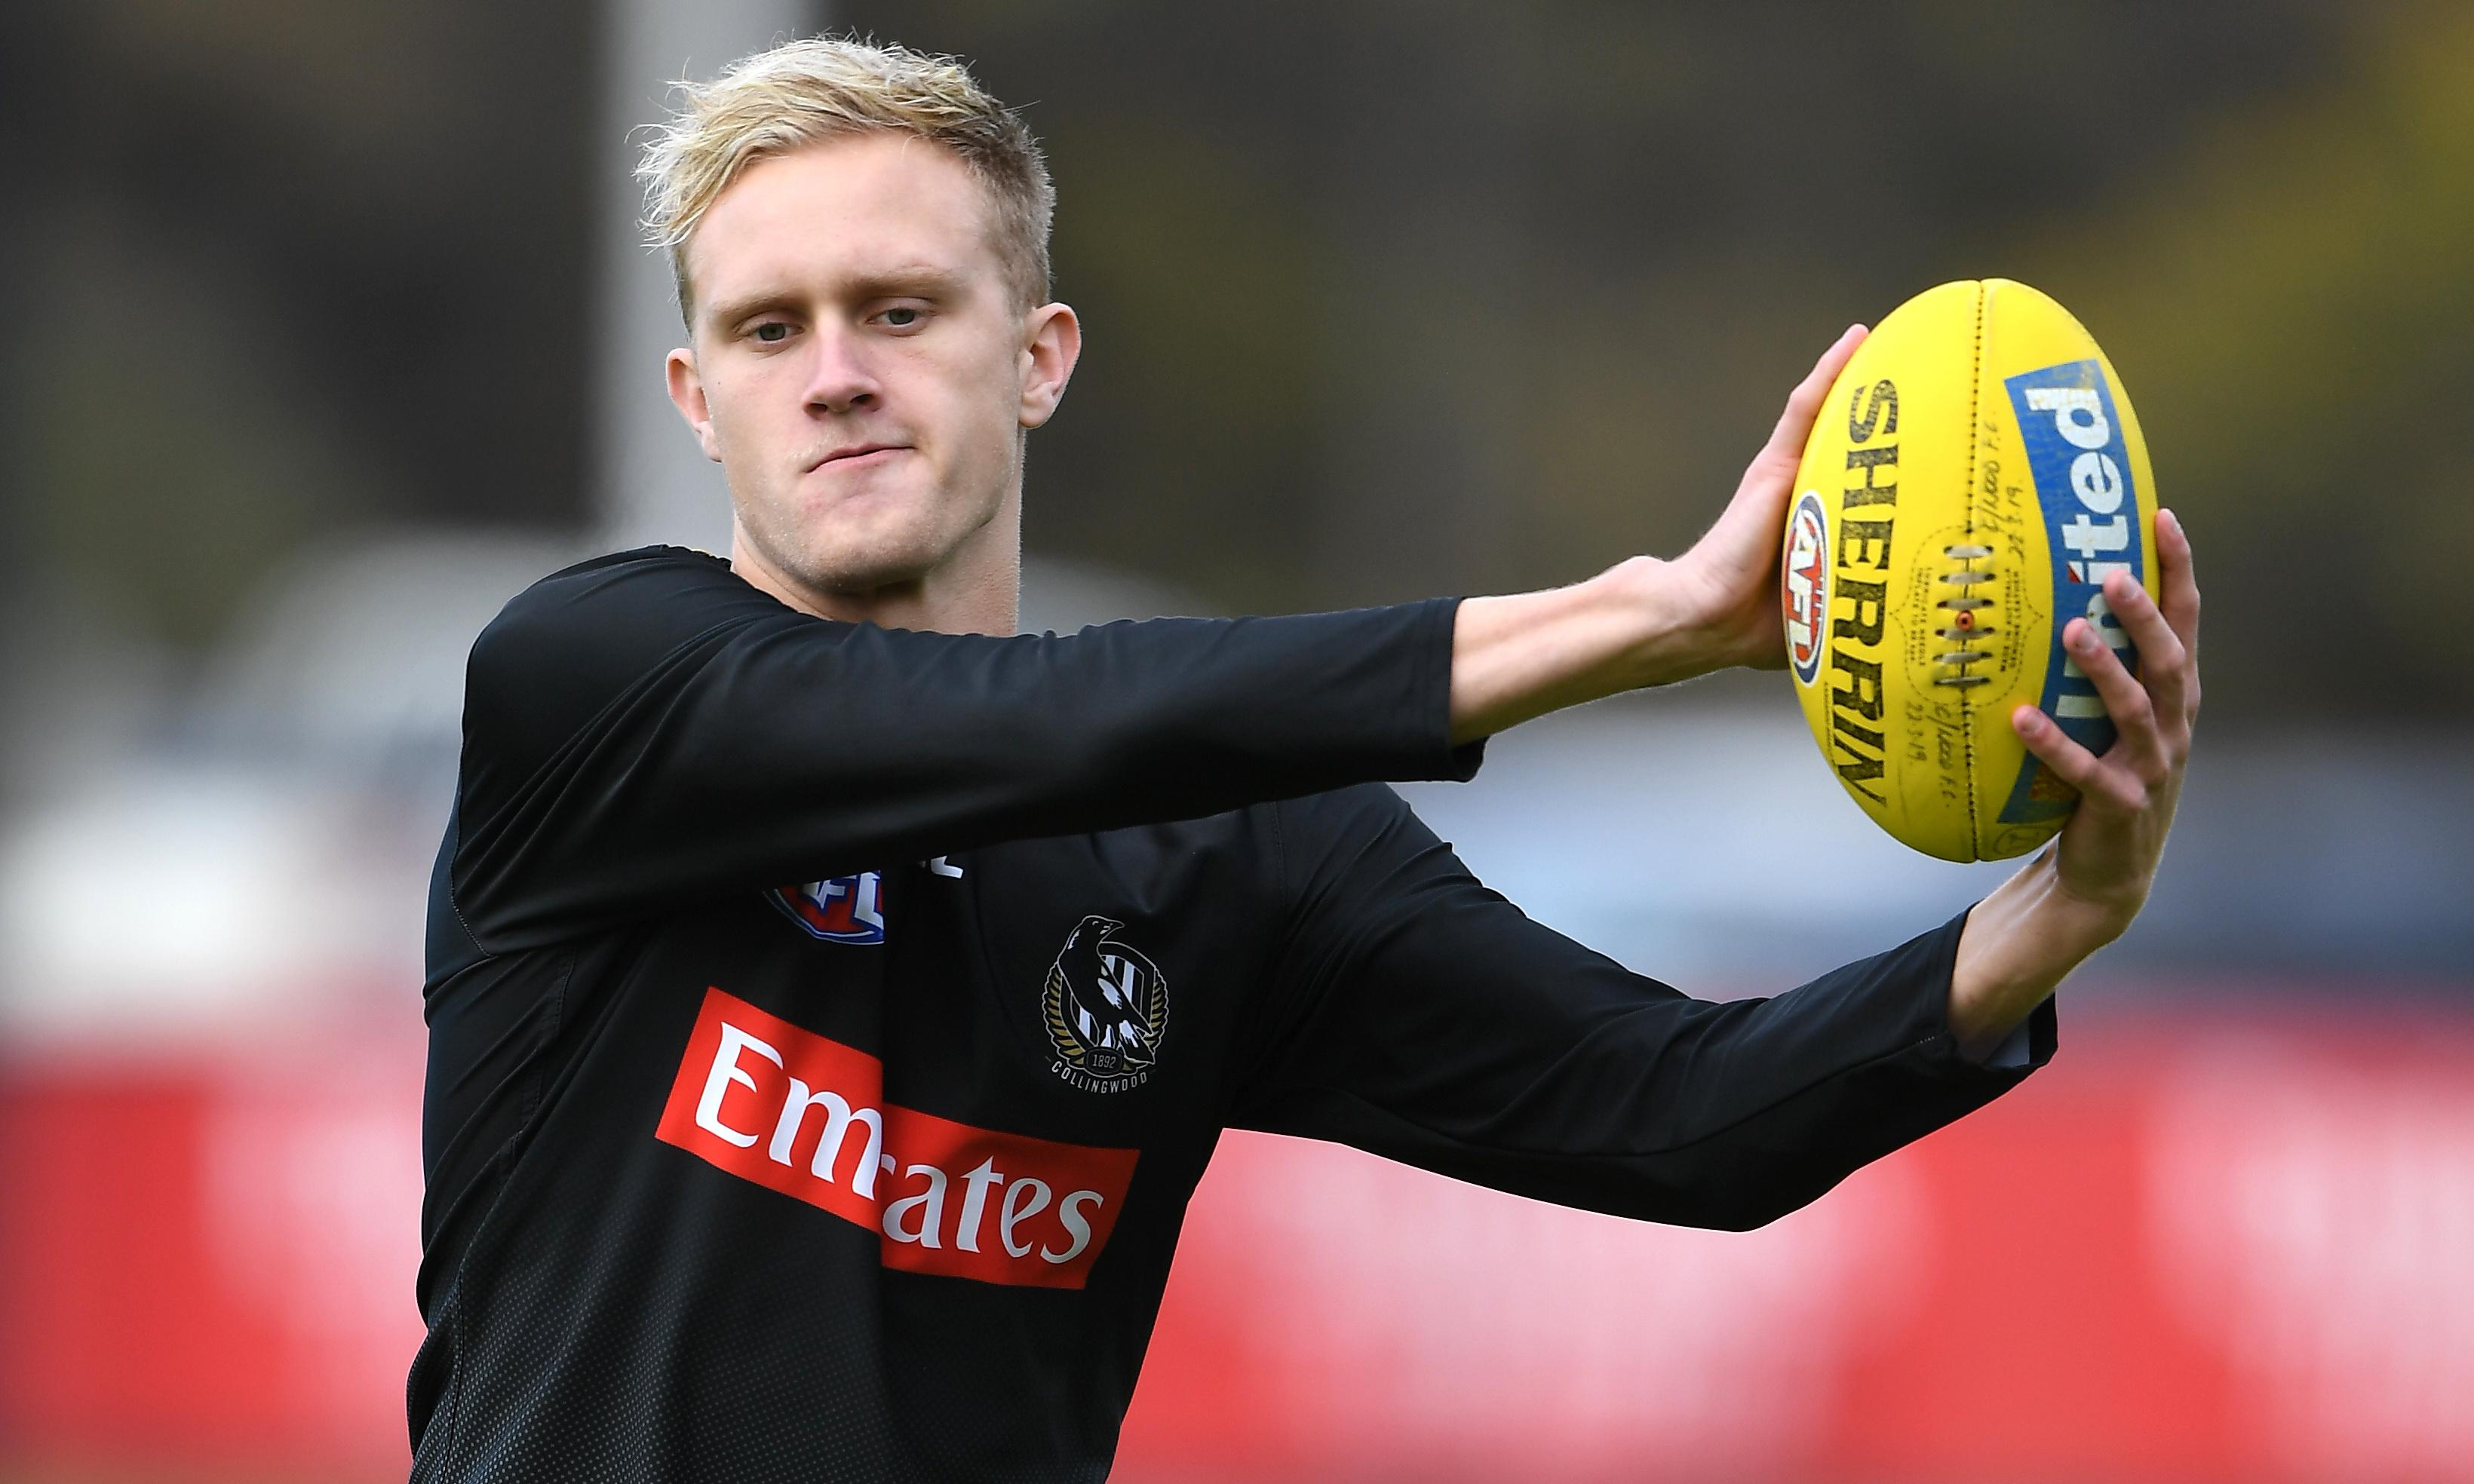 Collingwood's Jaidyn Stephenson handed 22-game ban for betting on Pies games